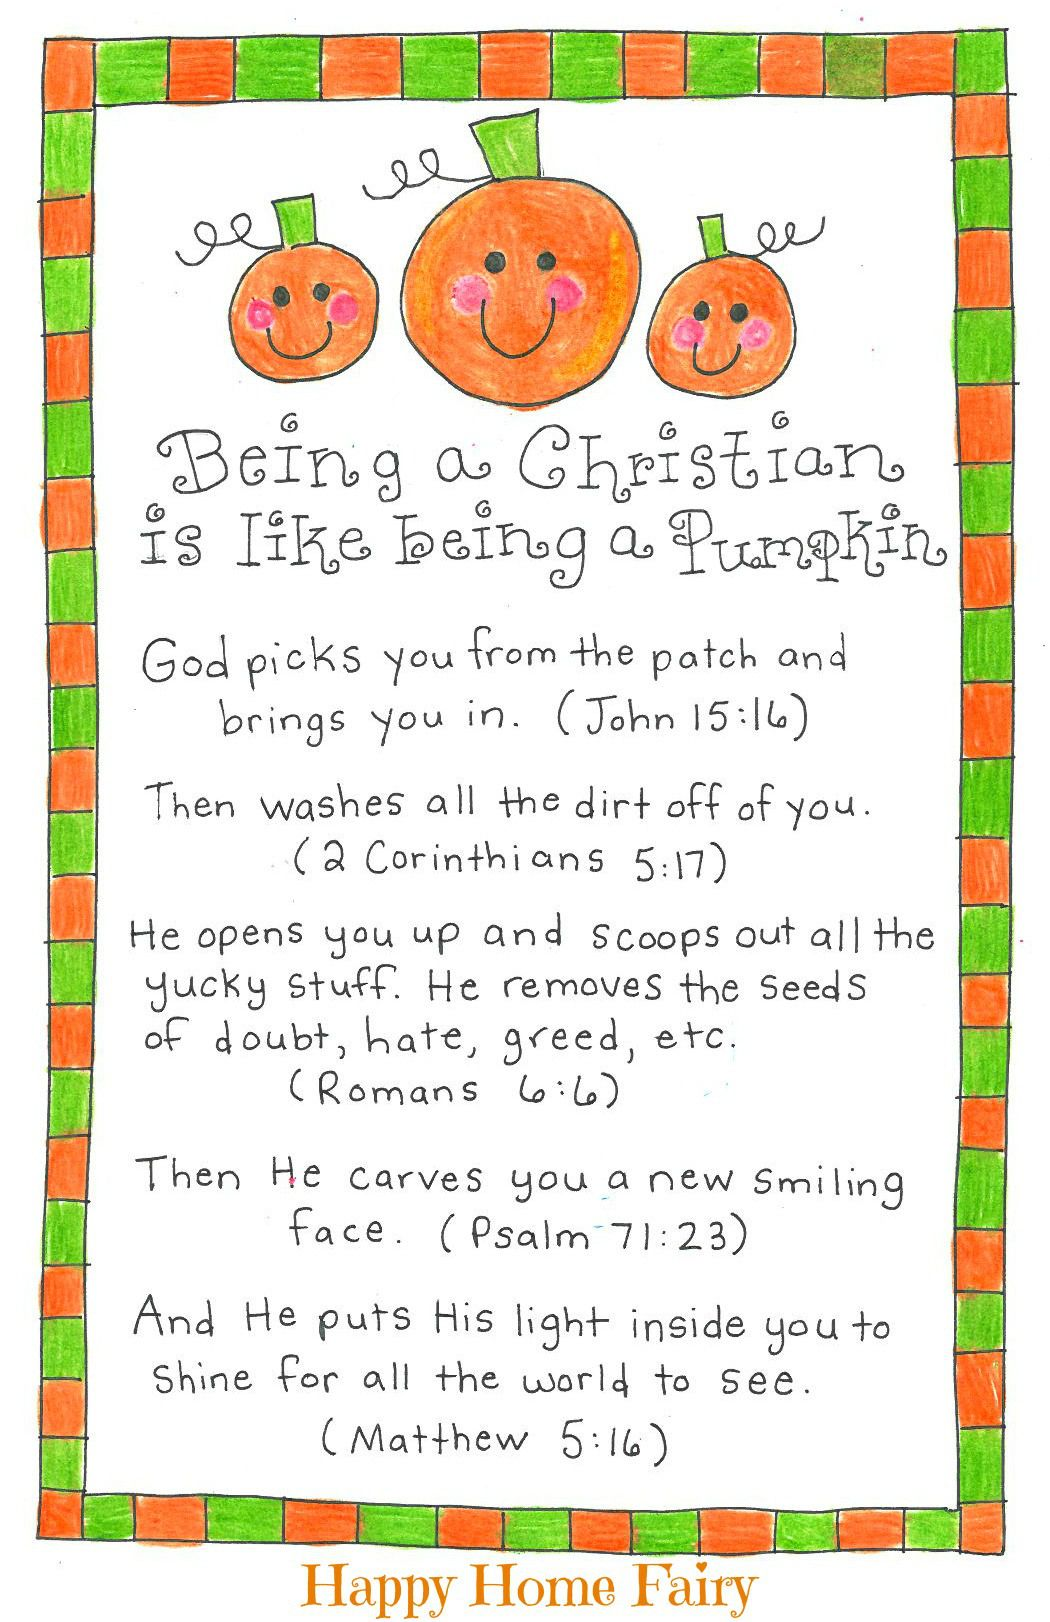 This is a graphic of Free Printable Children's Church Lessons in prayer